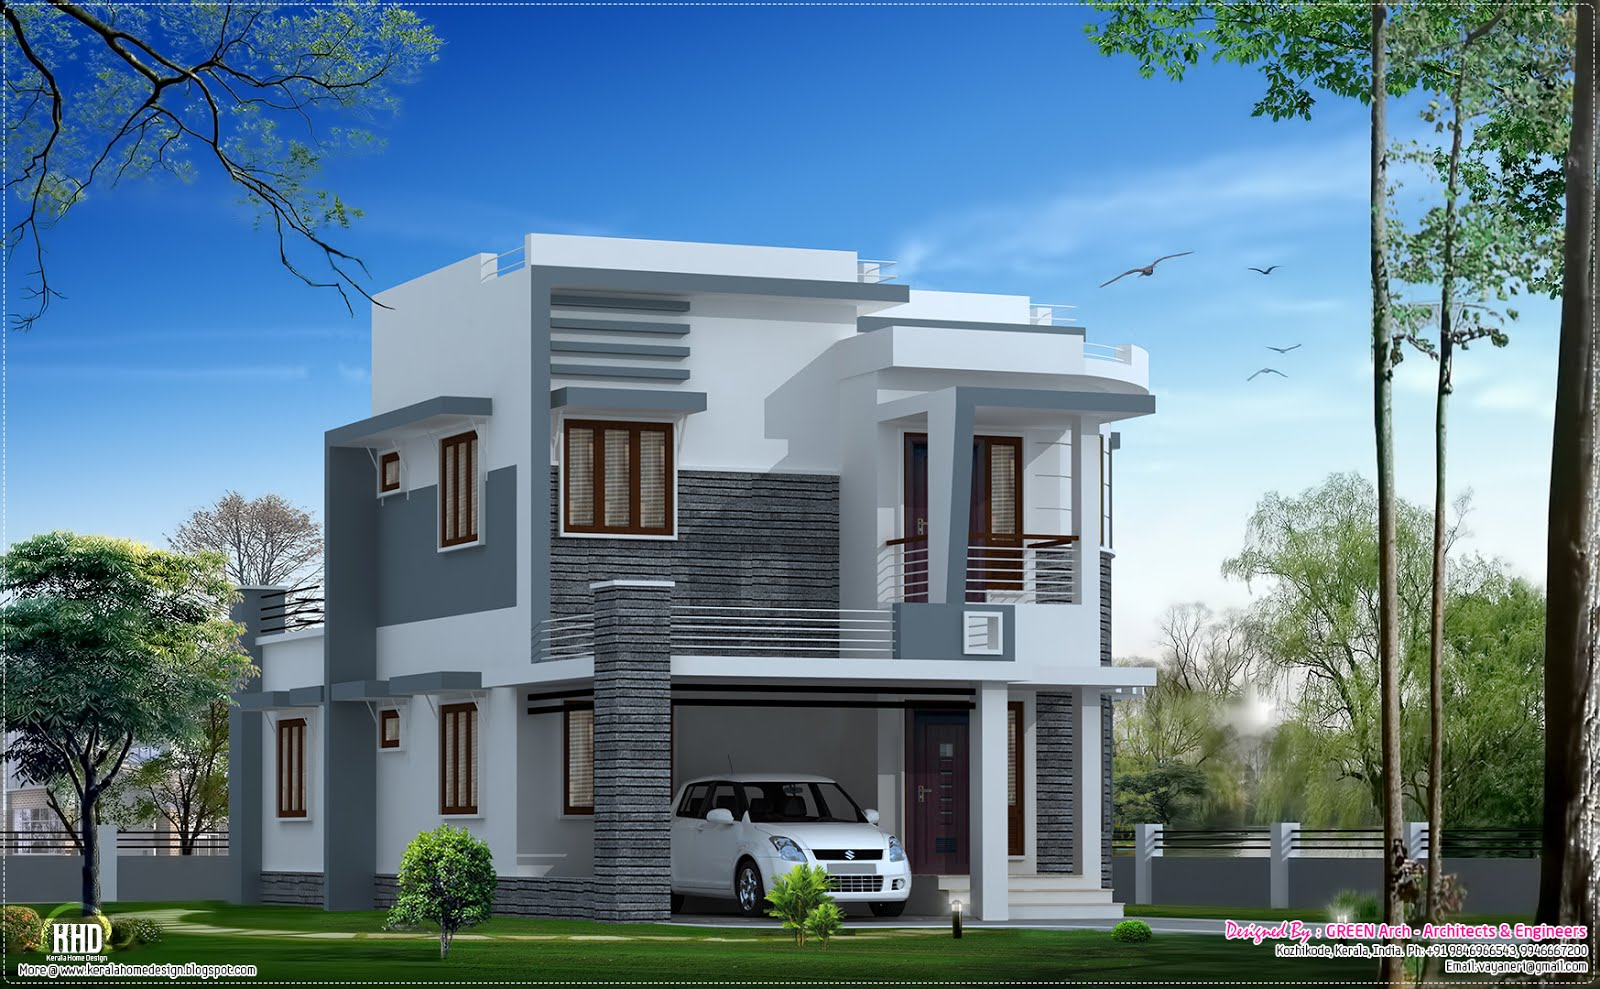 Beautiful 1650 modern home design kerala home Home design collection